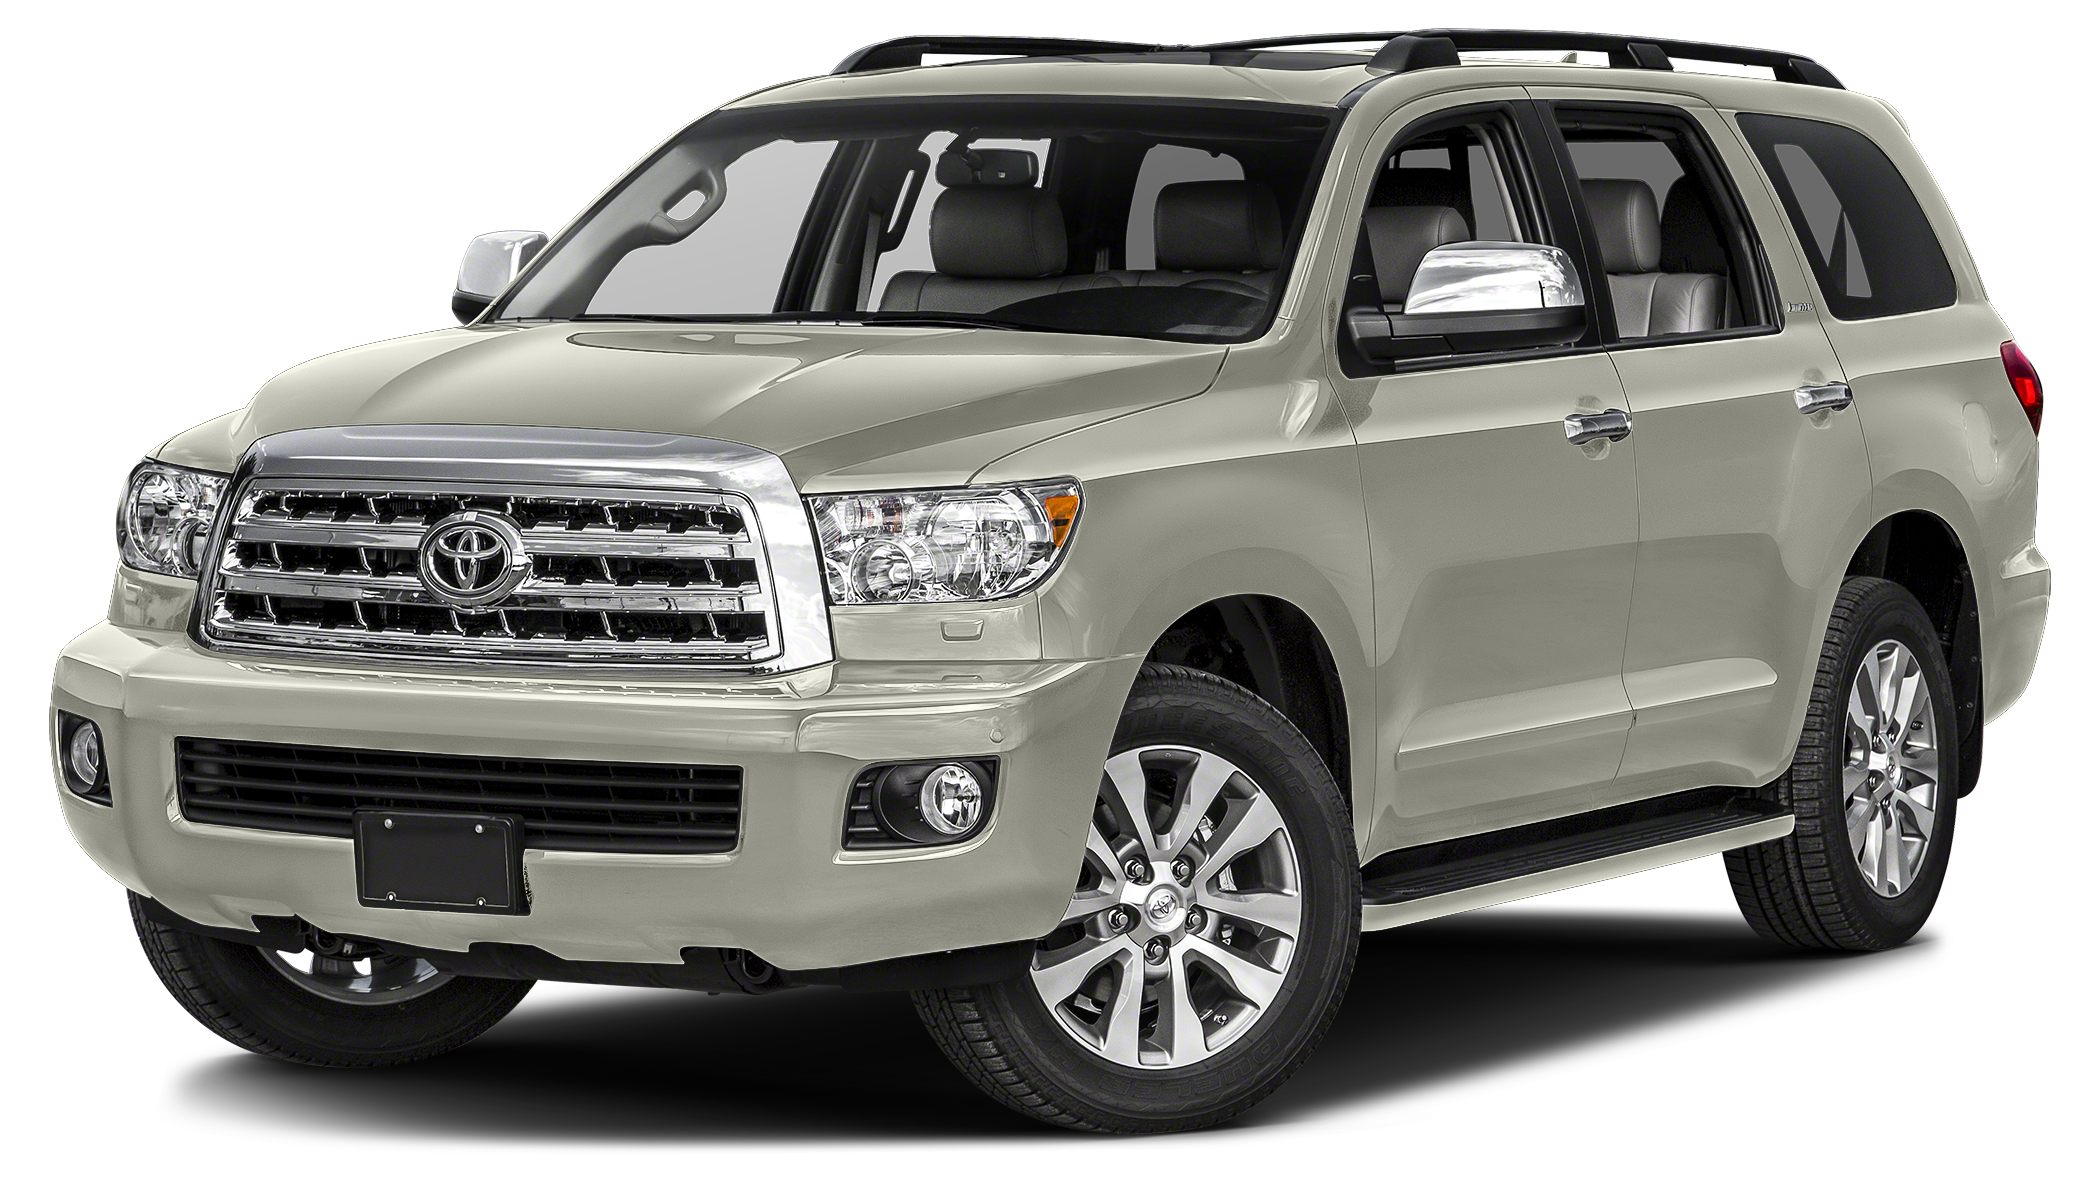 2016 Toyota Sequoia Platinum 2016 Toyota Sequoia Platinum 57L V8 A winning value There is no b